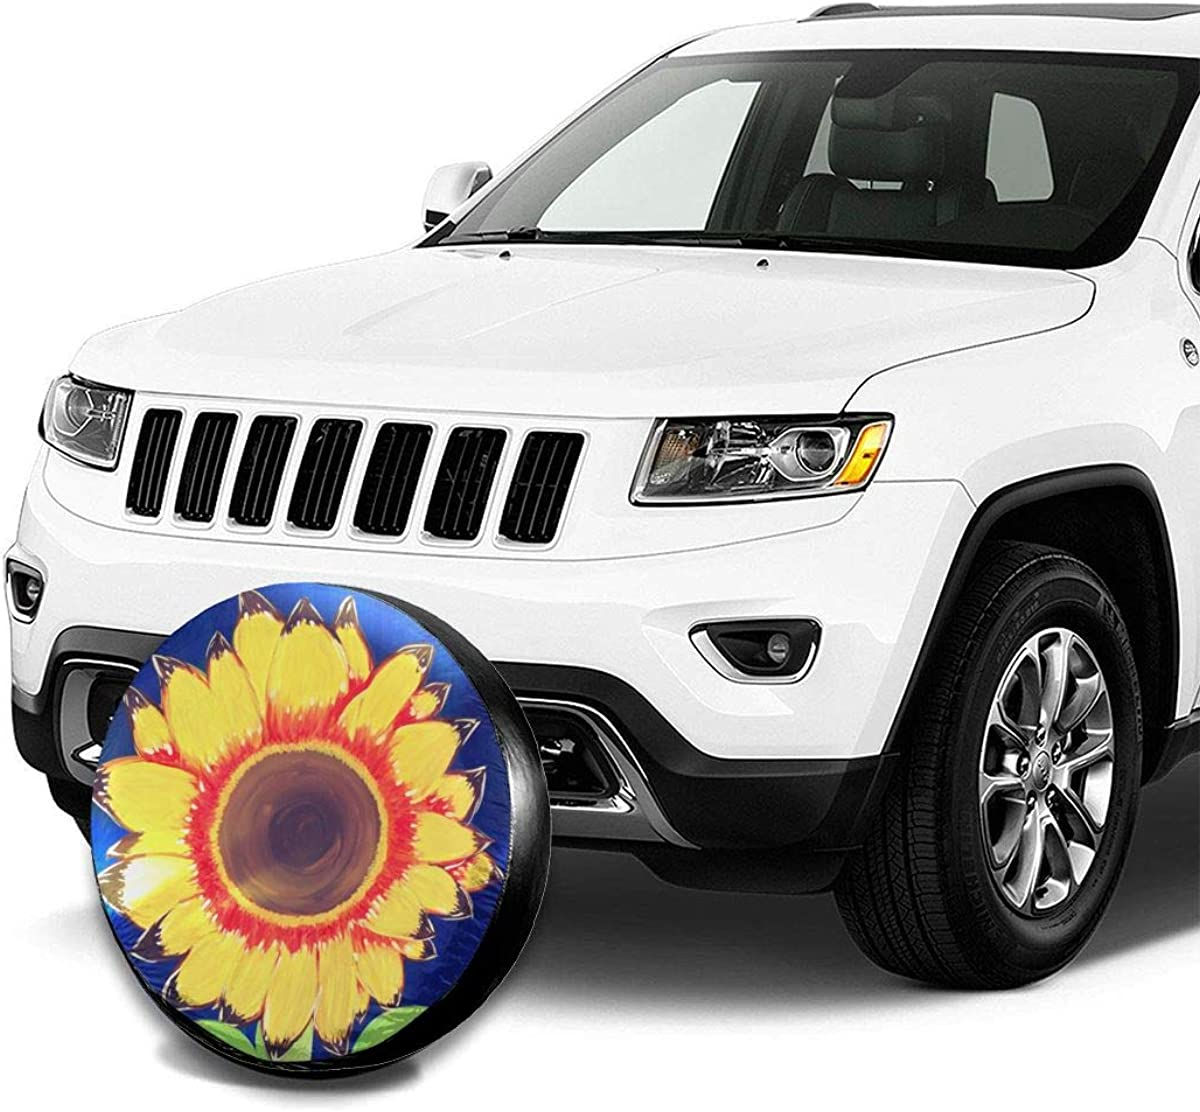 14, 15, 16, 17 inch INYANIDI Spare Tire Cover Sunflower ...